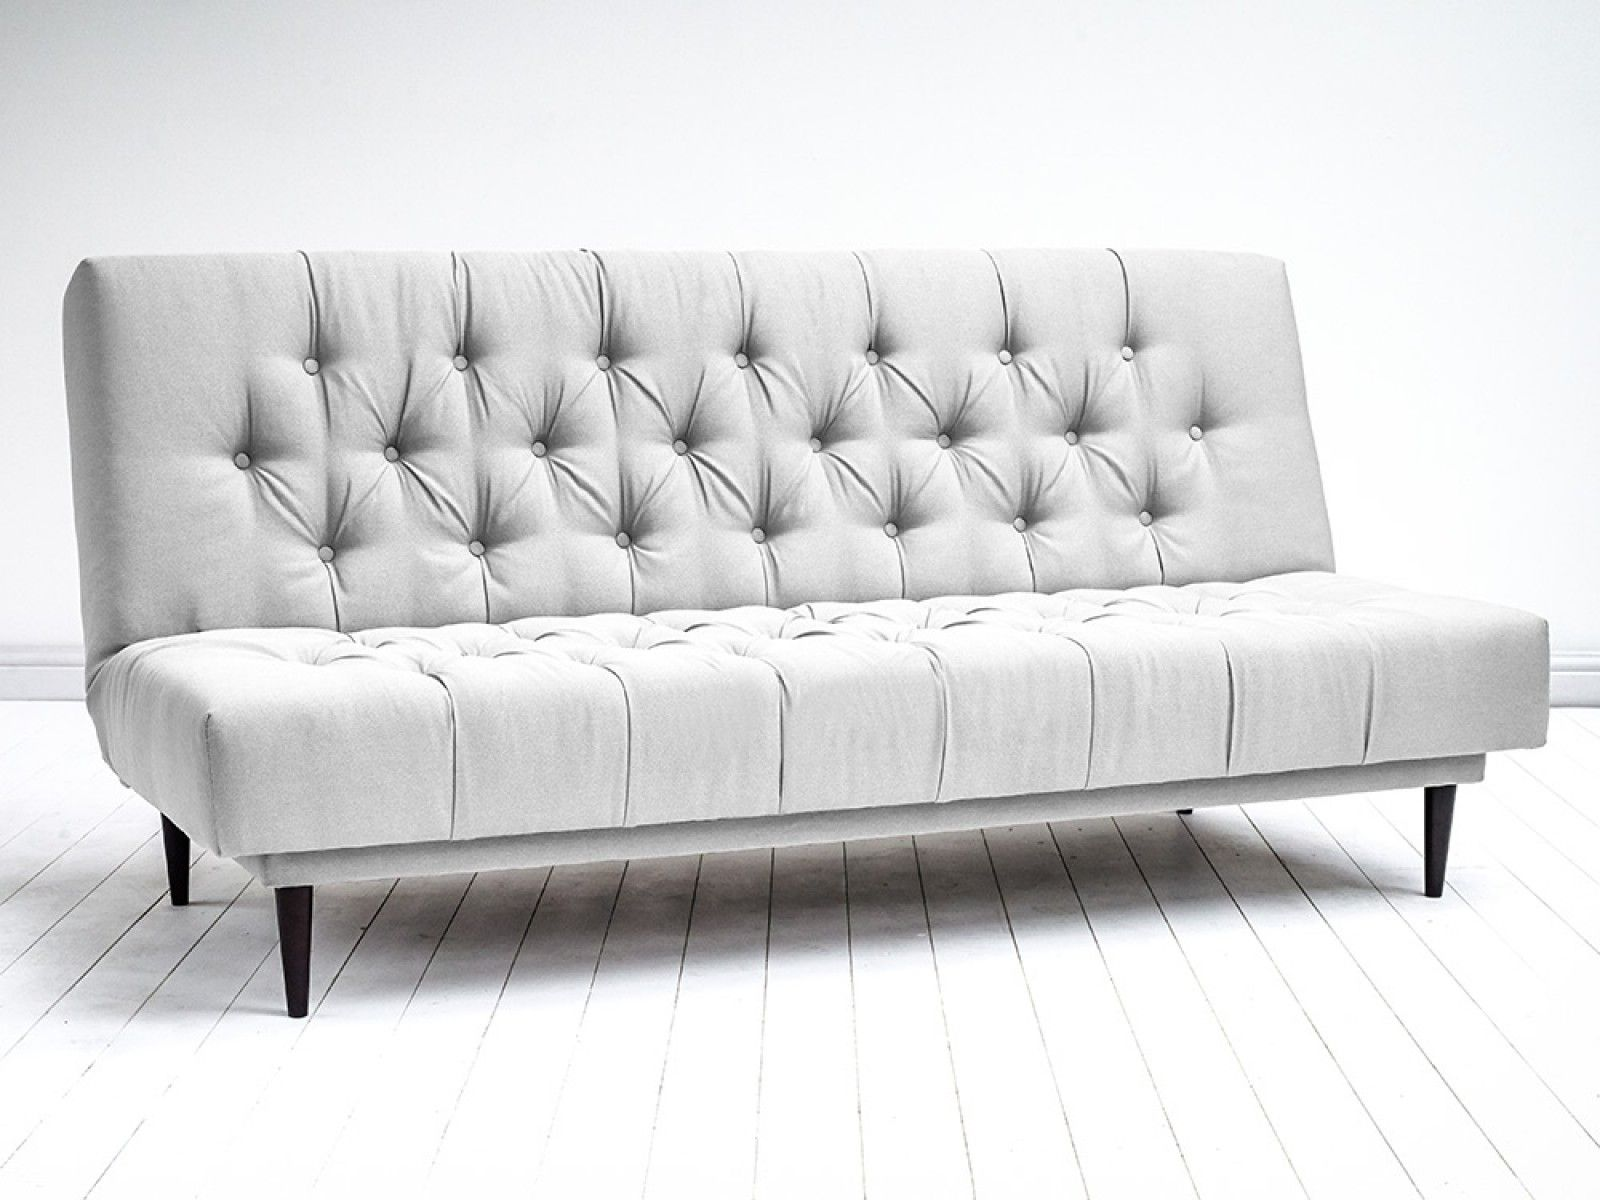 JACOB SOFA BED - Buttoned Chesterfield style Sofa Bed. Creating extra sleeping space in your home has never been easier or more stylish